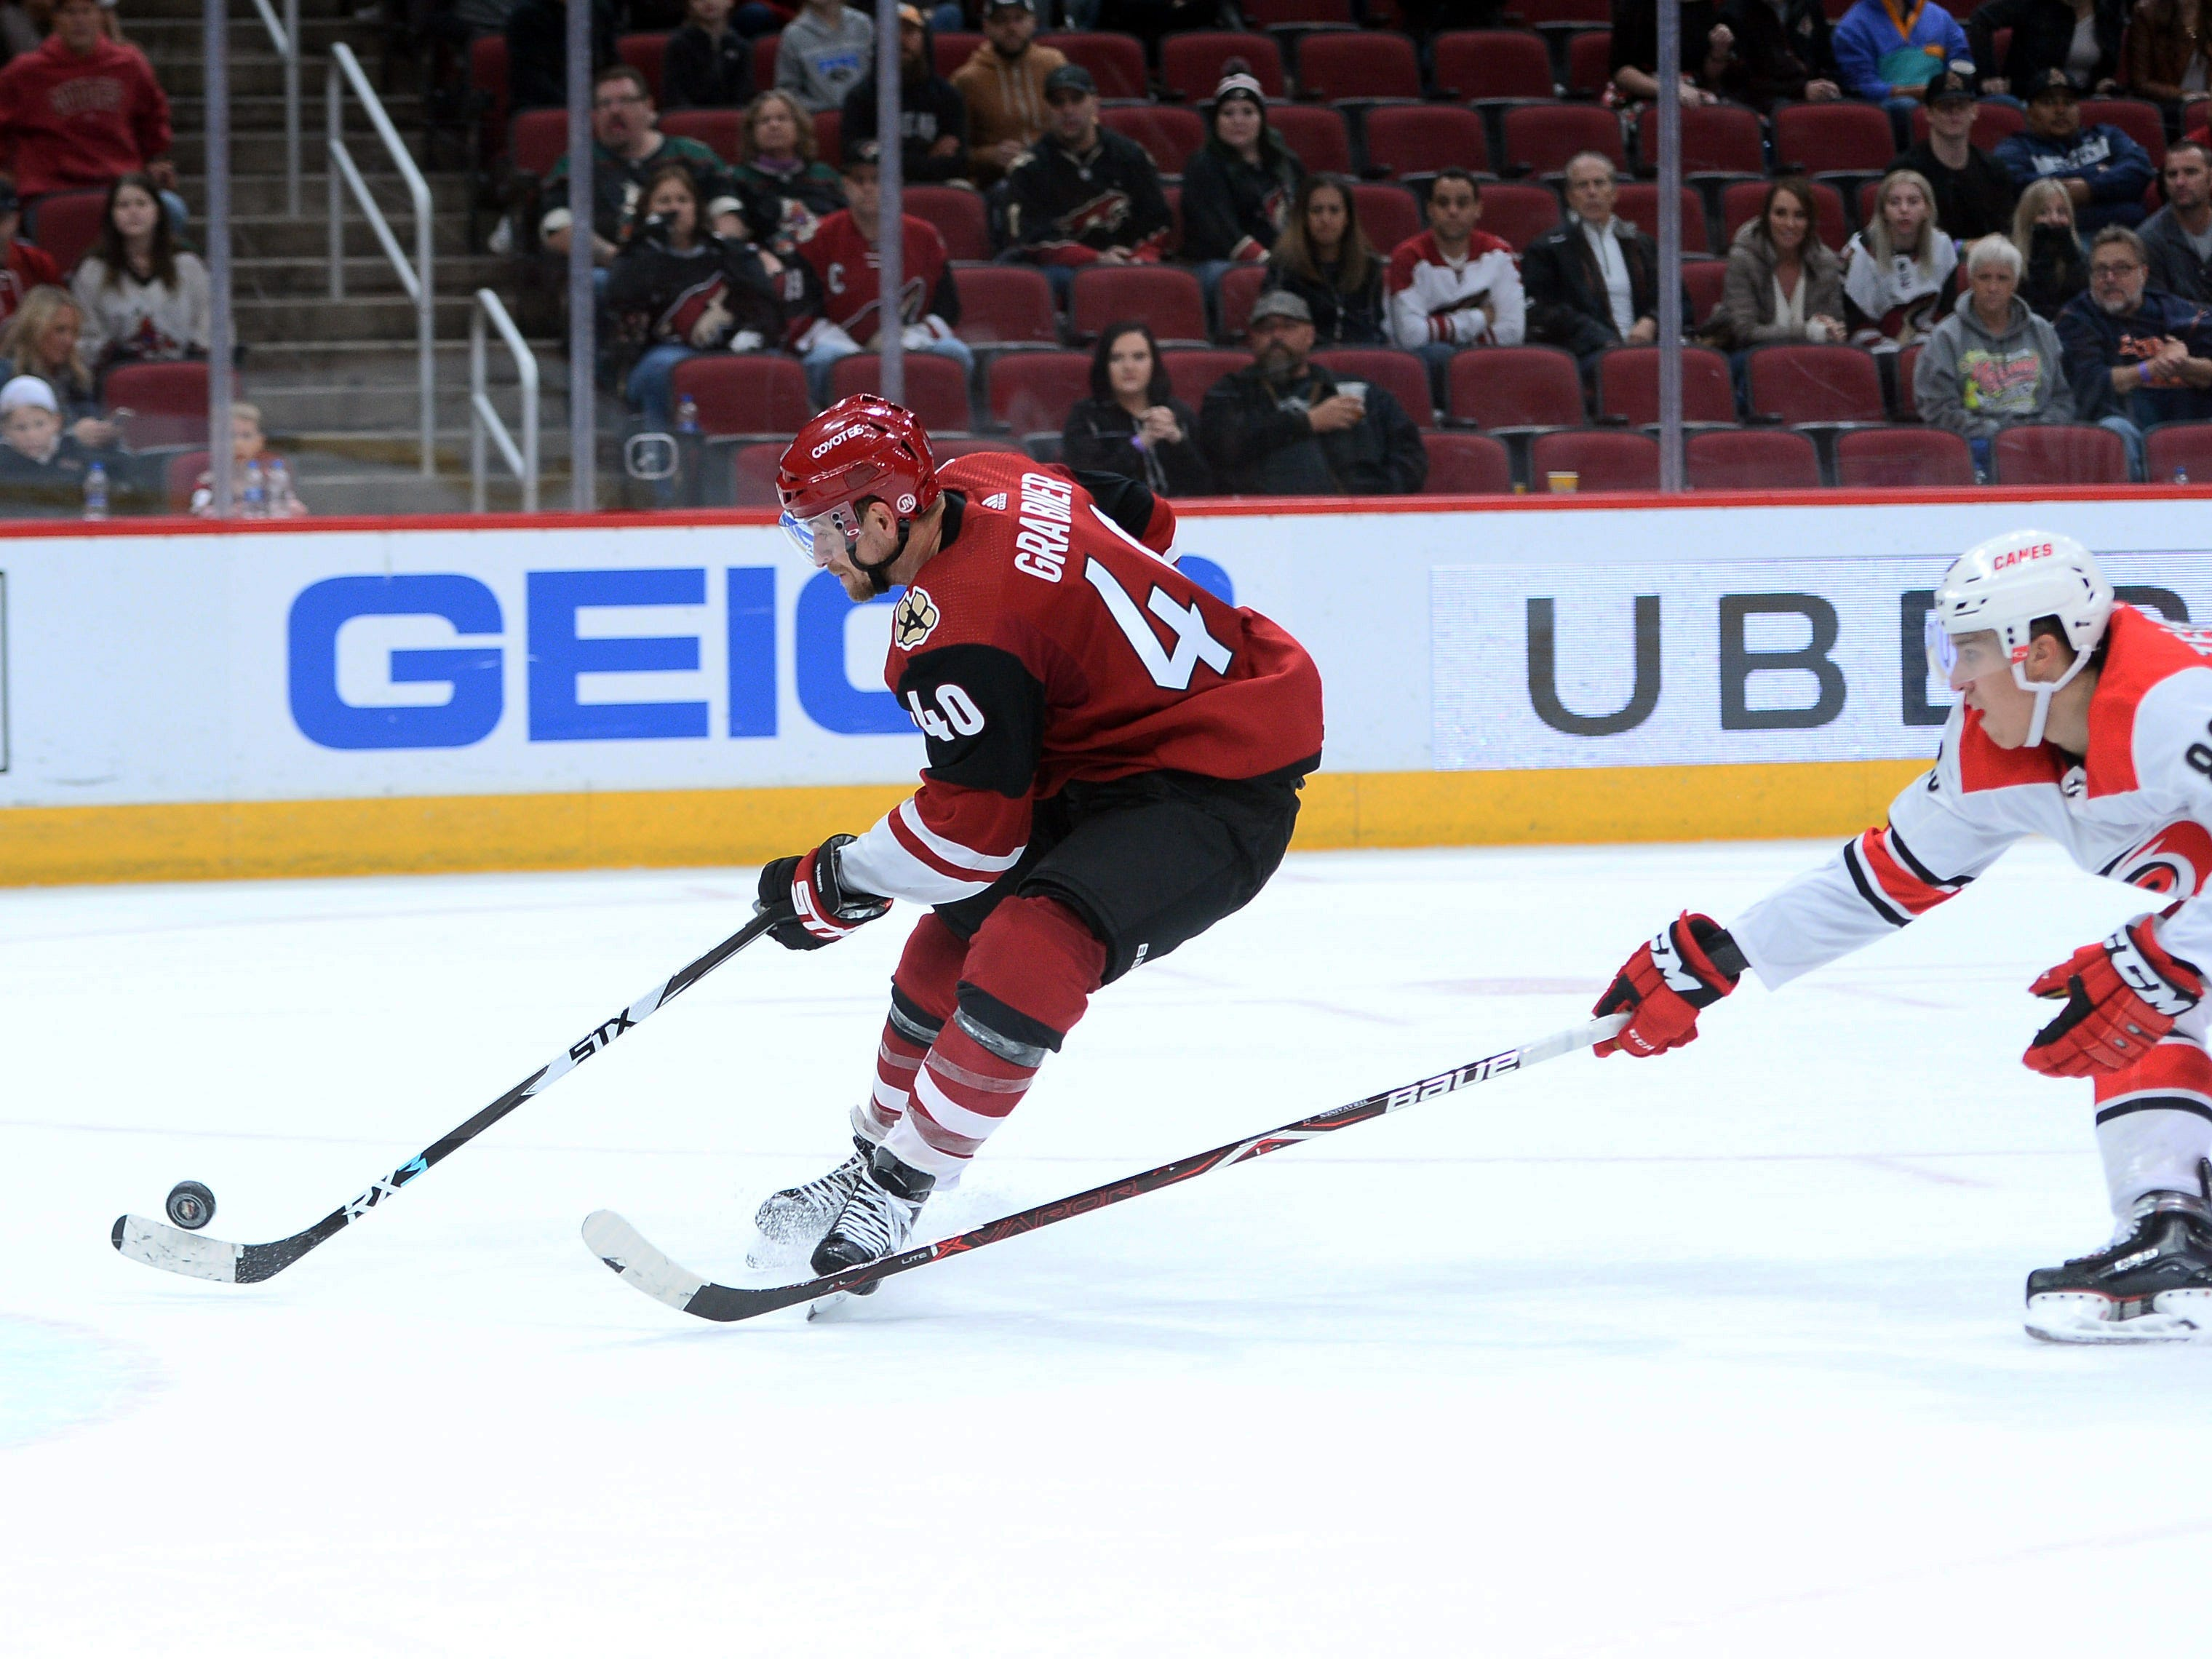 Nov 2, 2018: Arizona Coyotes right wing Michael Grabner (40) shoots and scores the game winning goal in front of Carolina Hurricanes left wing Teuvo Teravainen (86) during the overtime period at Gila River Arena.